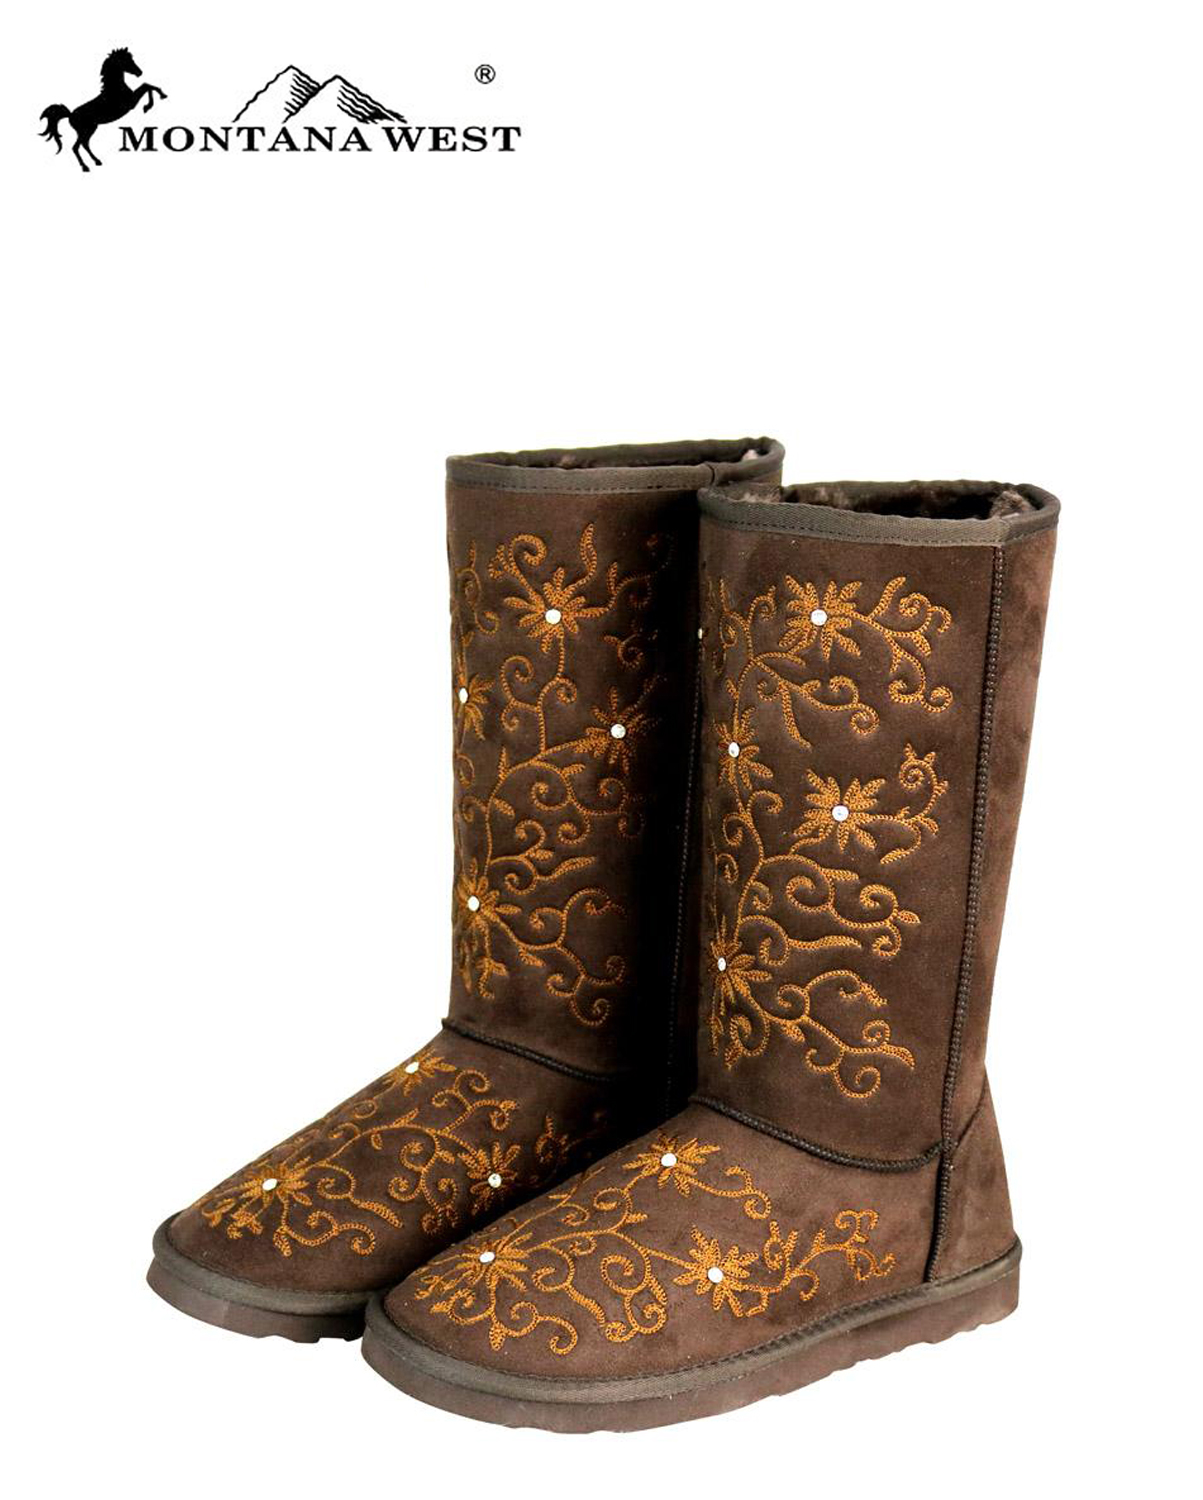 BST100(CF)-MW-wholesale-montana-west-boots-set-tooled-hair-on-block-faux-fur-suede-rubber-texture-sole-soft(0).jpg